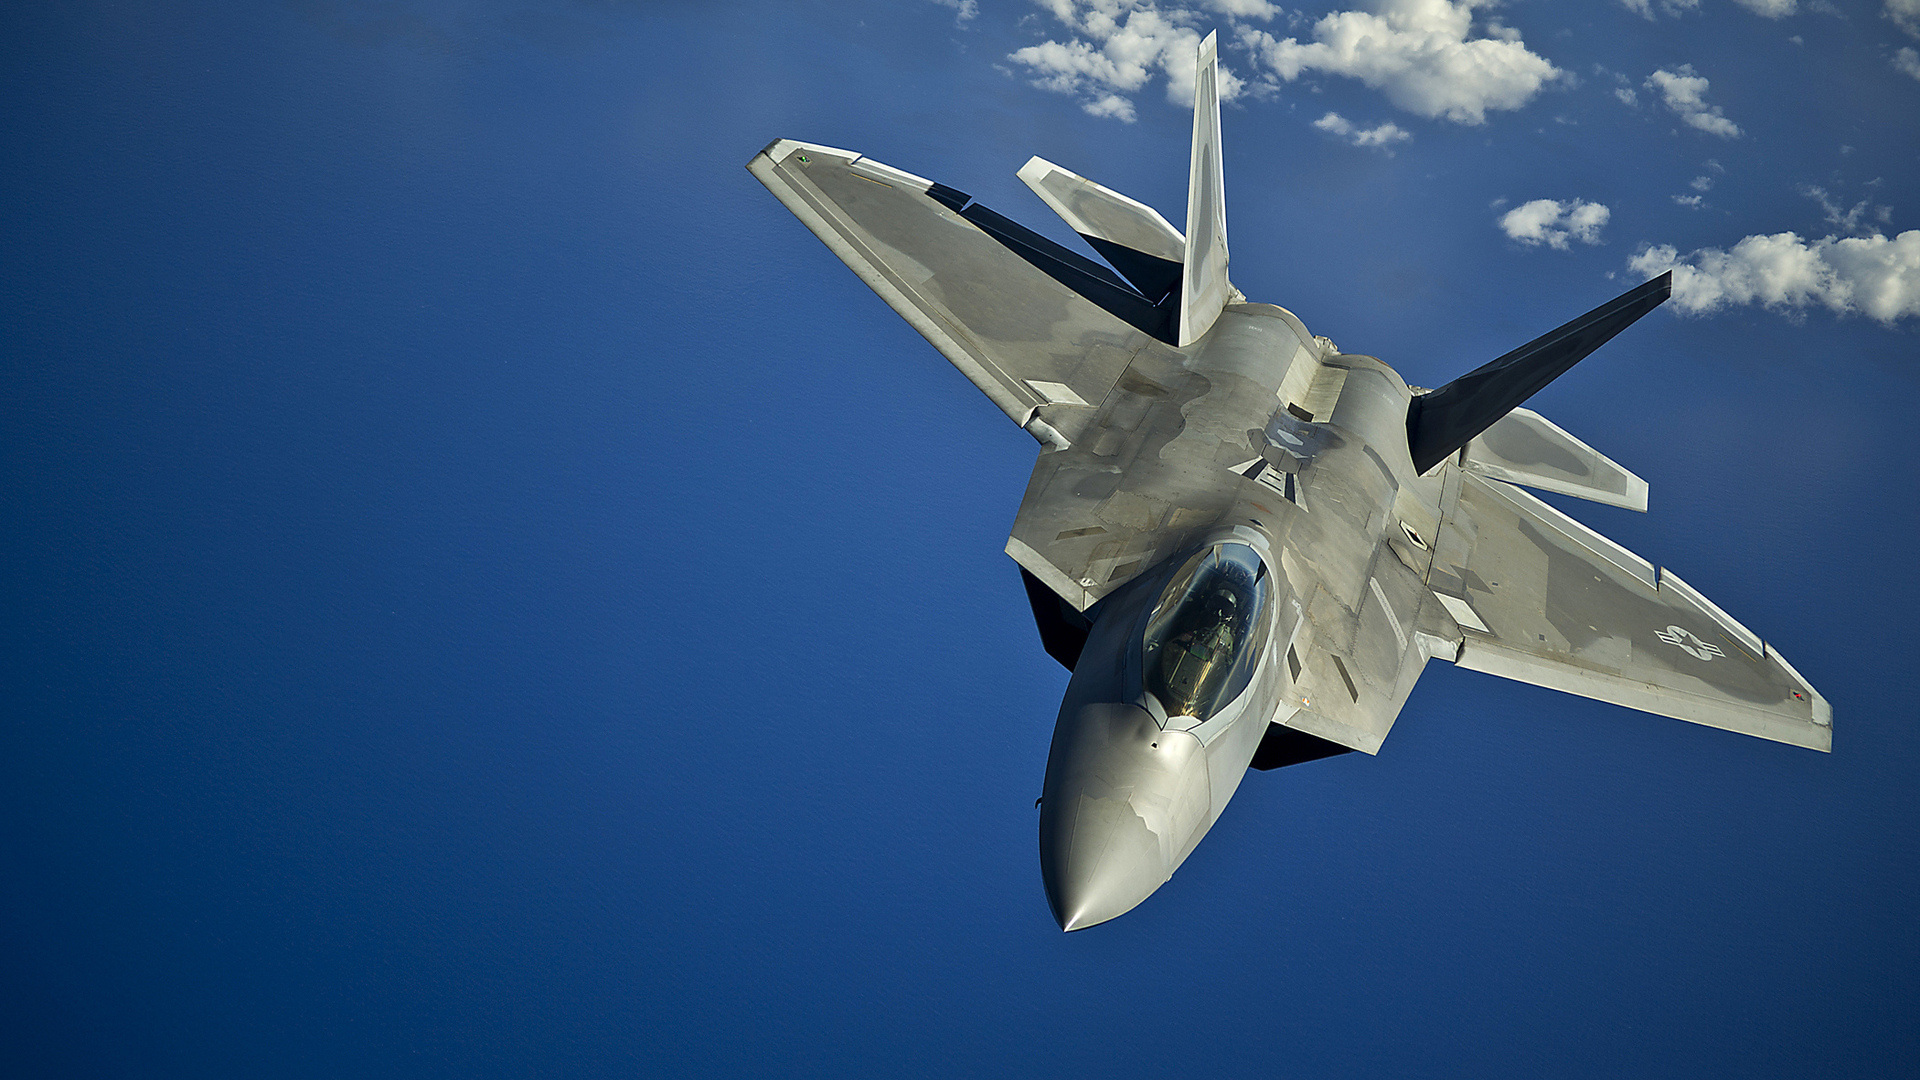 Lockheed Martin F 22 Raptor Computer Wallpapers Desktop Backgrounds 1920x1080